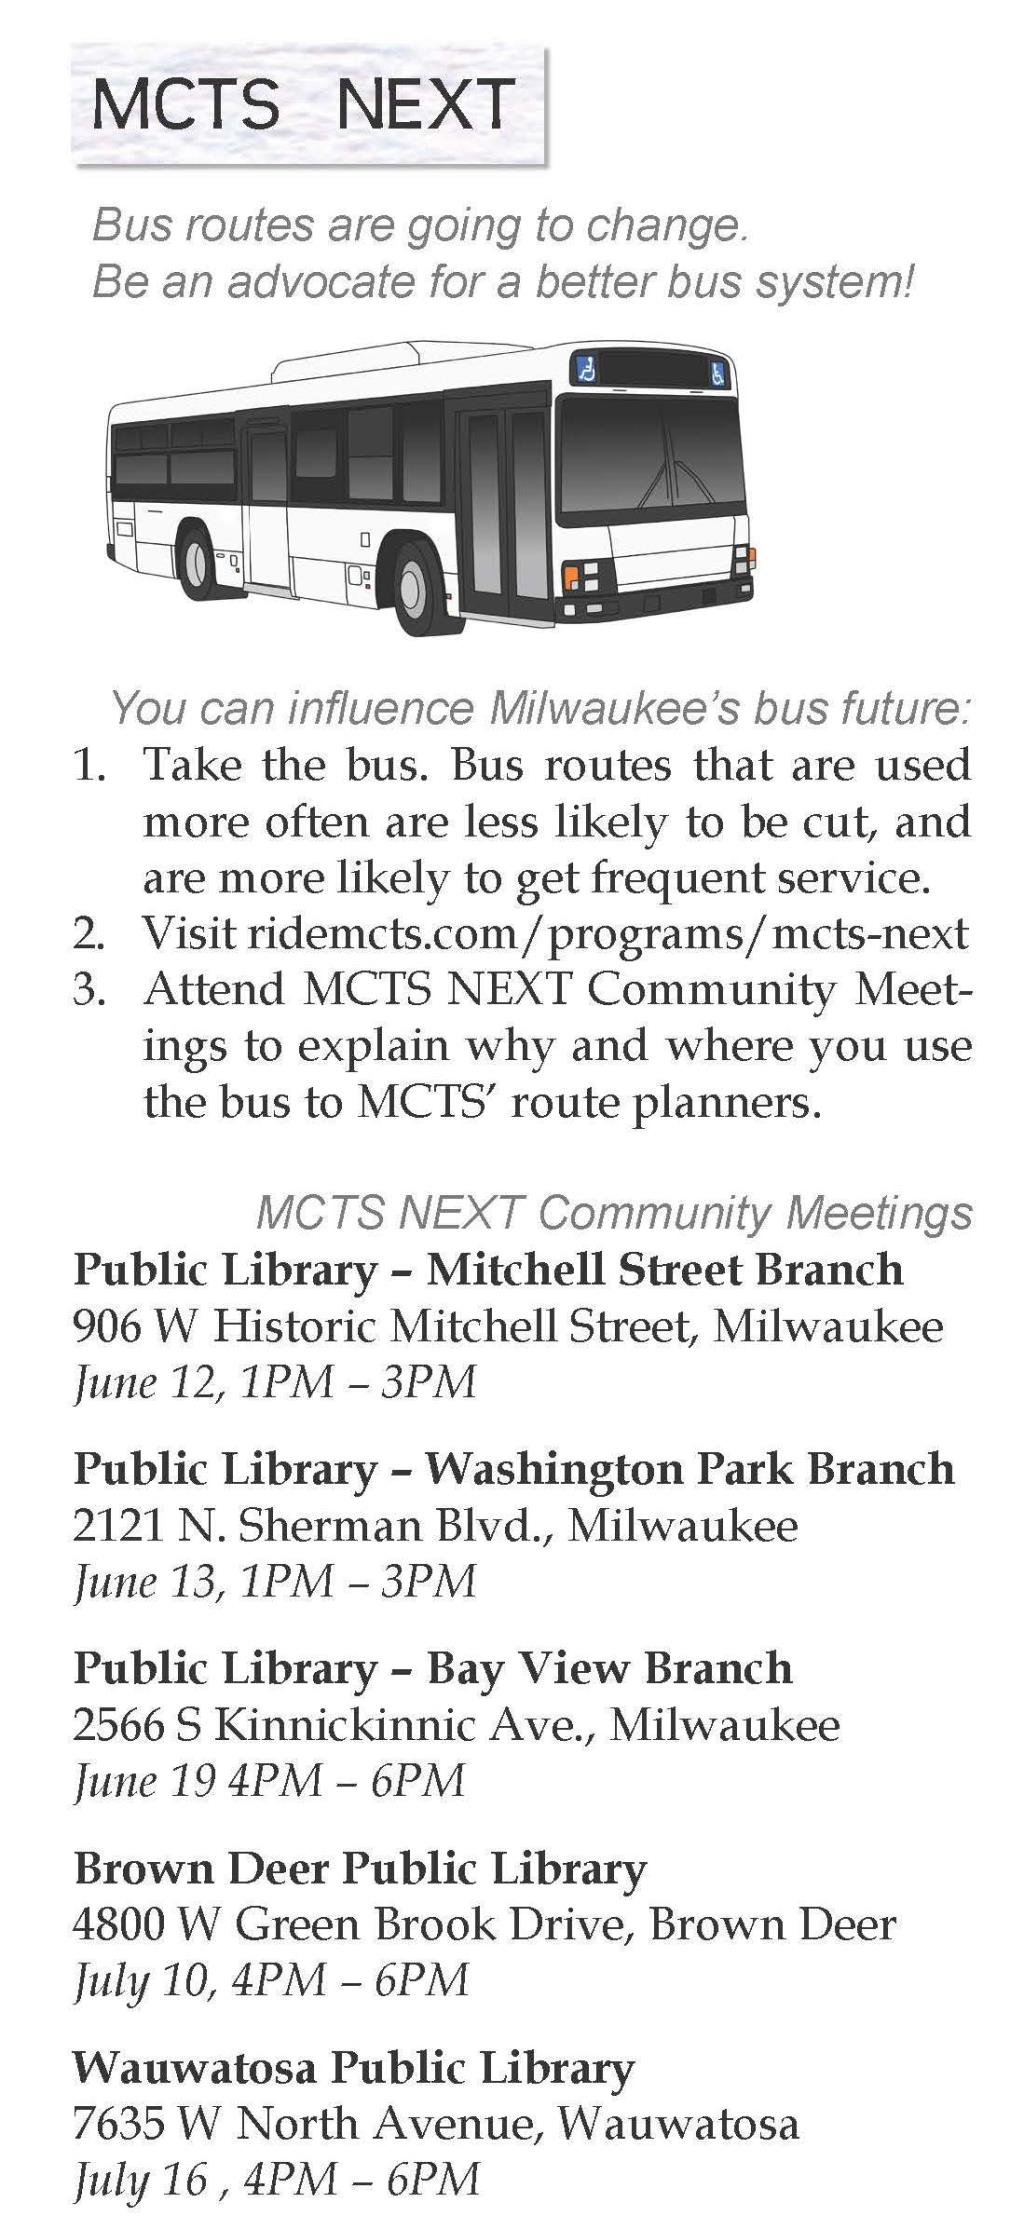 MCTS NEXT_meeting schedule